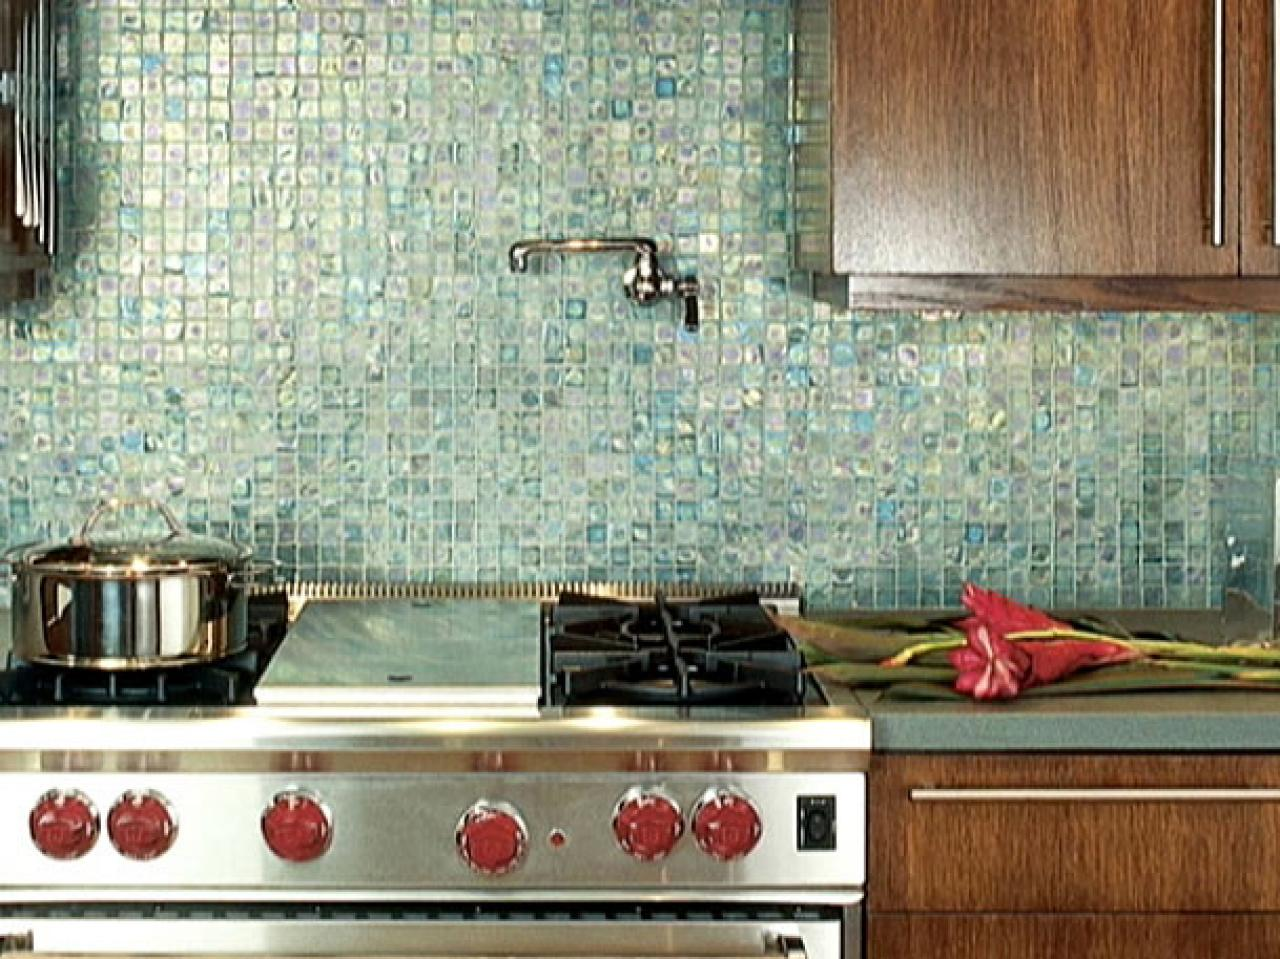 How to design an eco friendly kitchen hgtv Design kitchen backsplash glass tiles